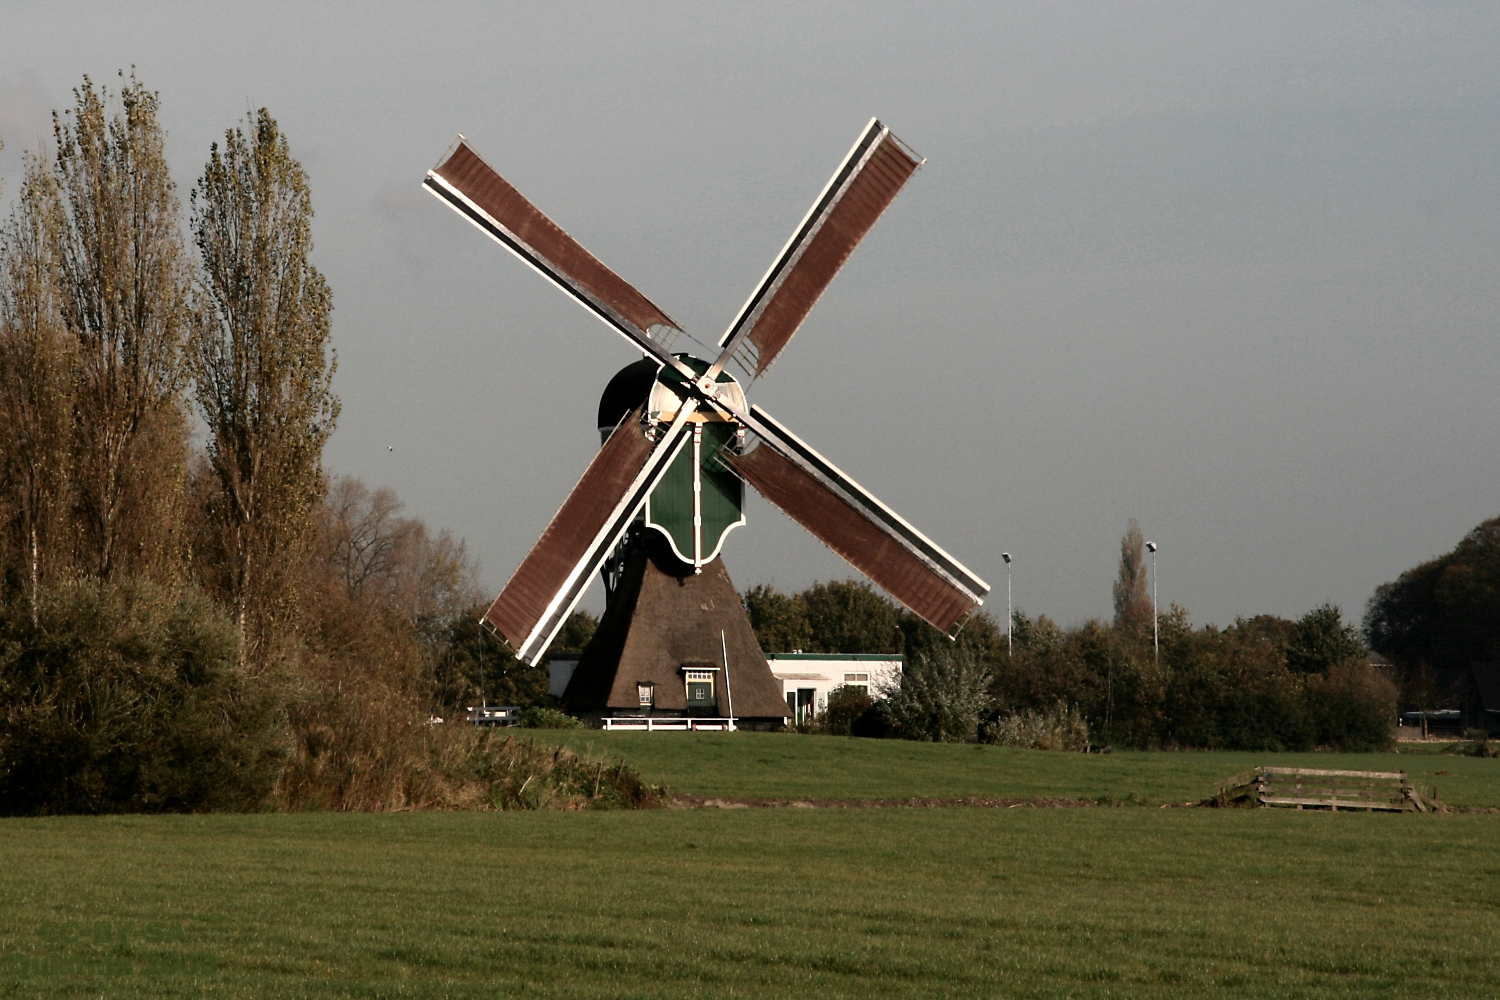 Weijpoortse molen in de media